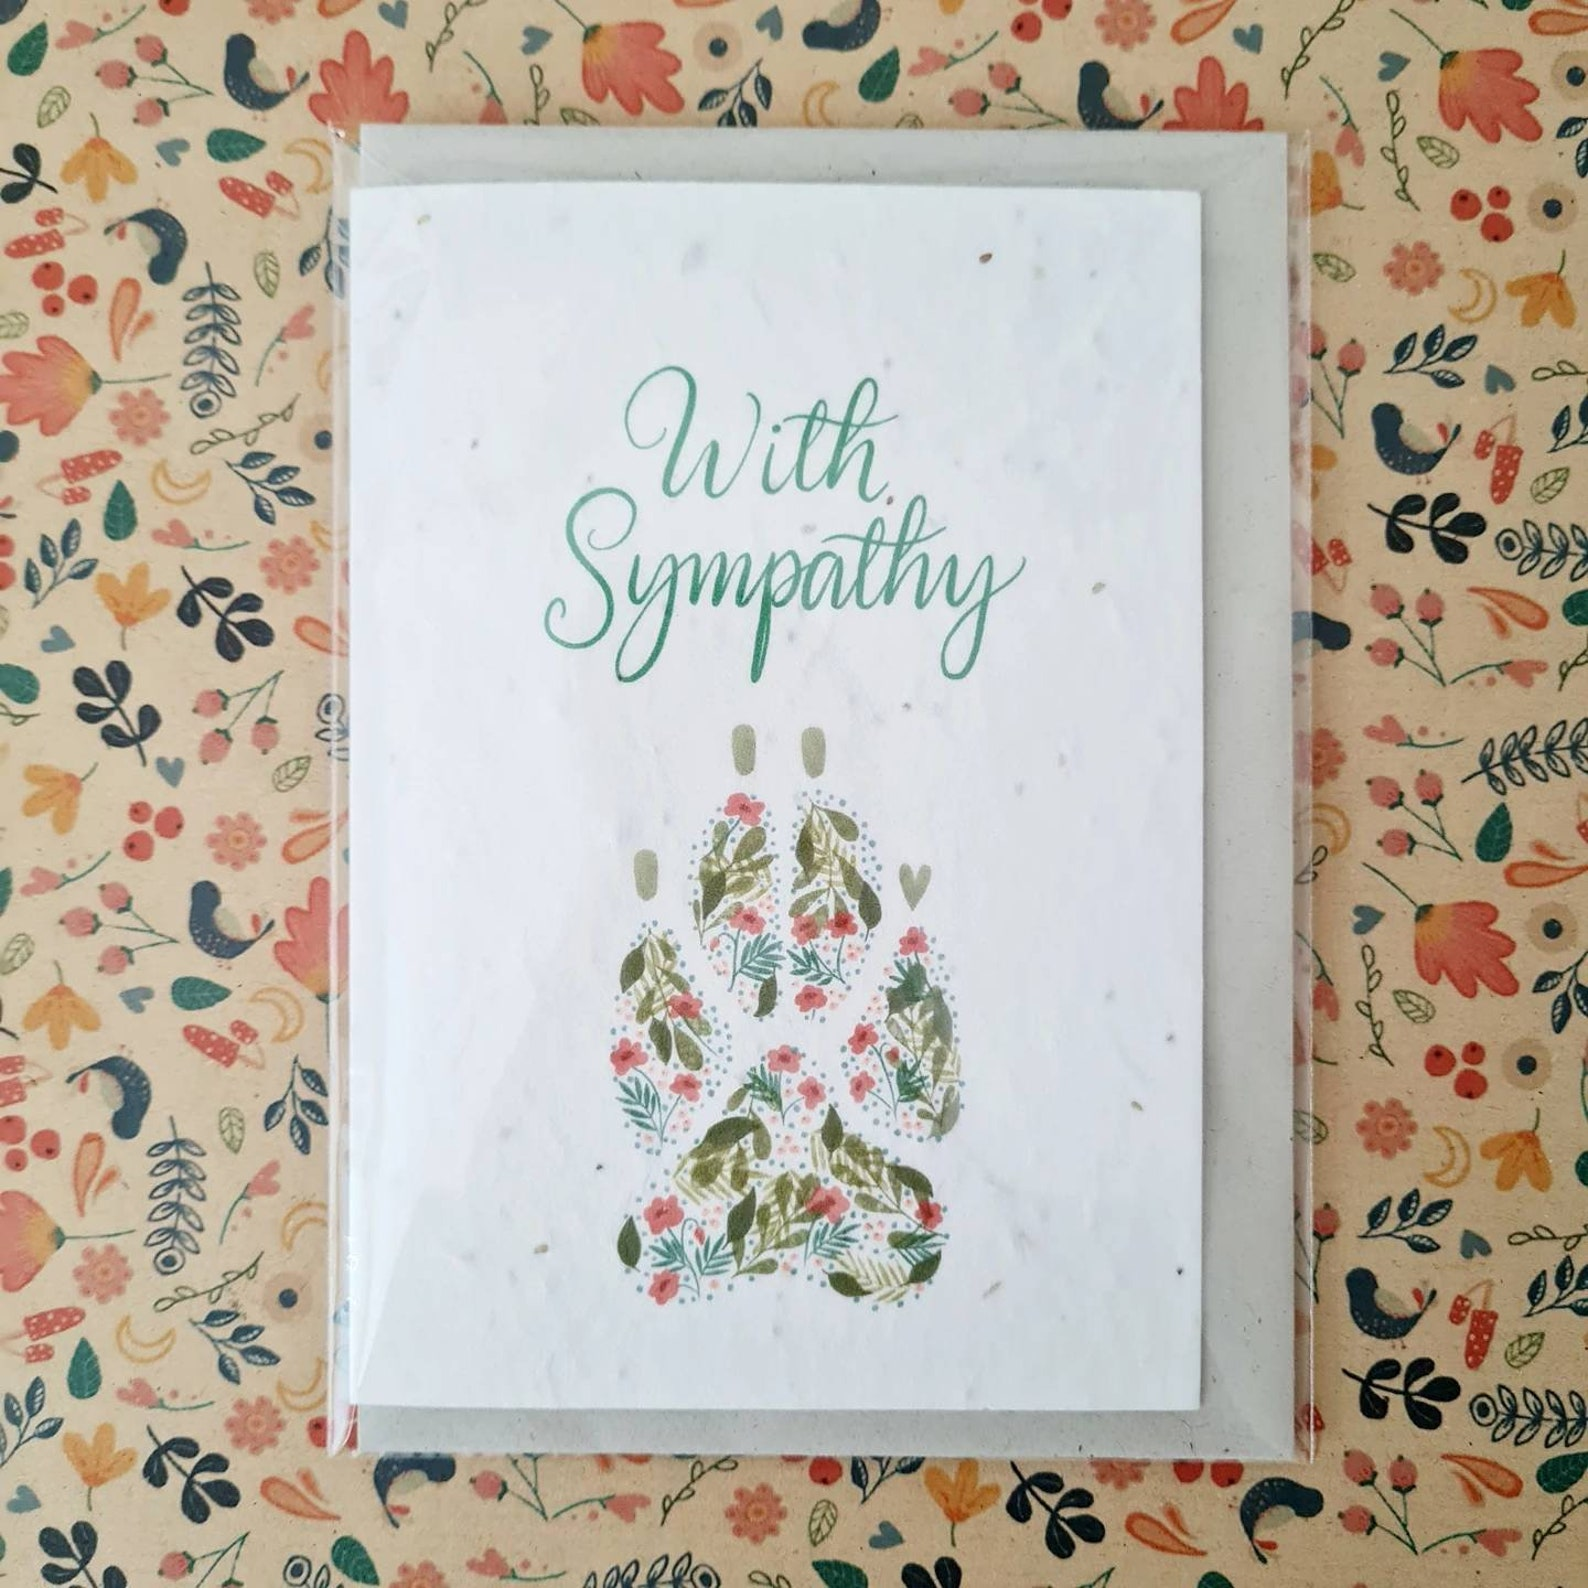 Plantable Wildflower Pet Sympathy Seed Card With Dog Paw Print